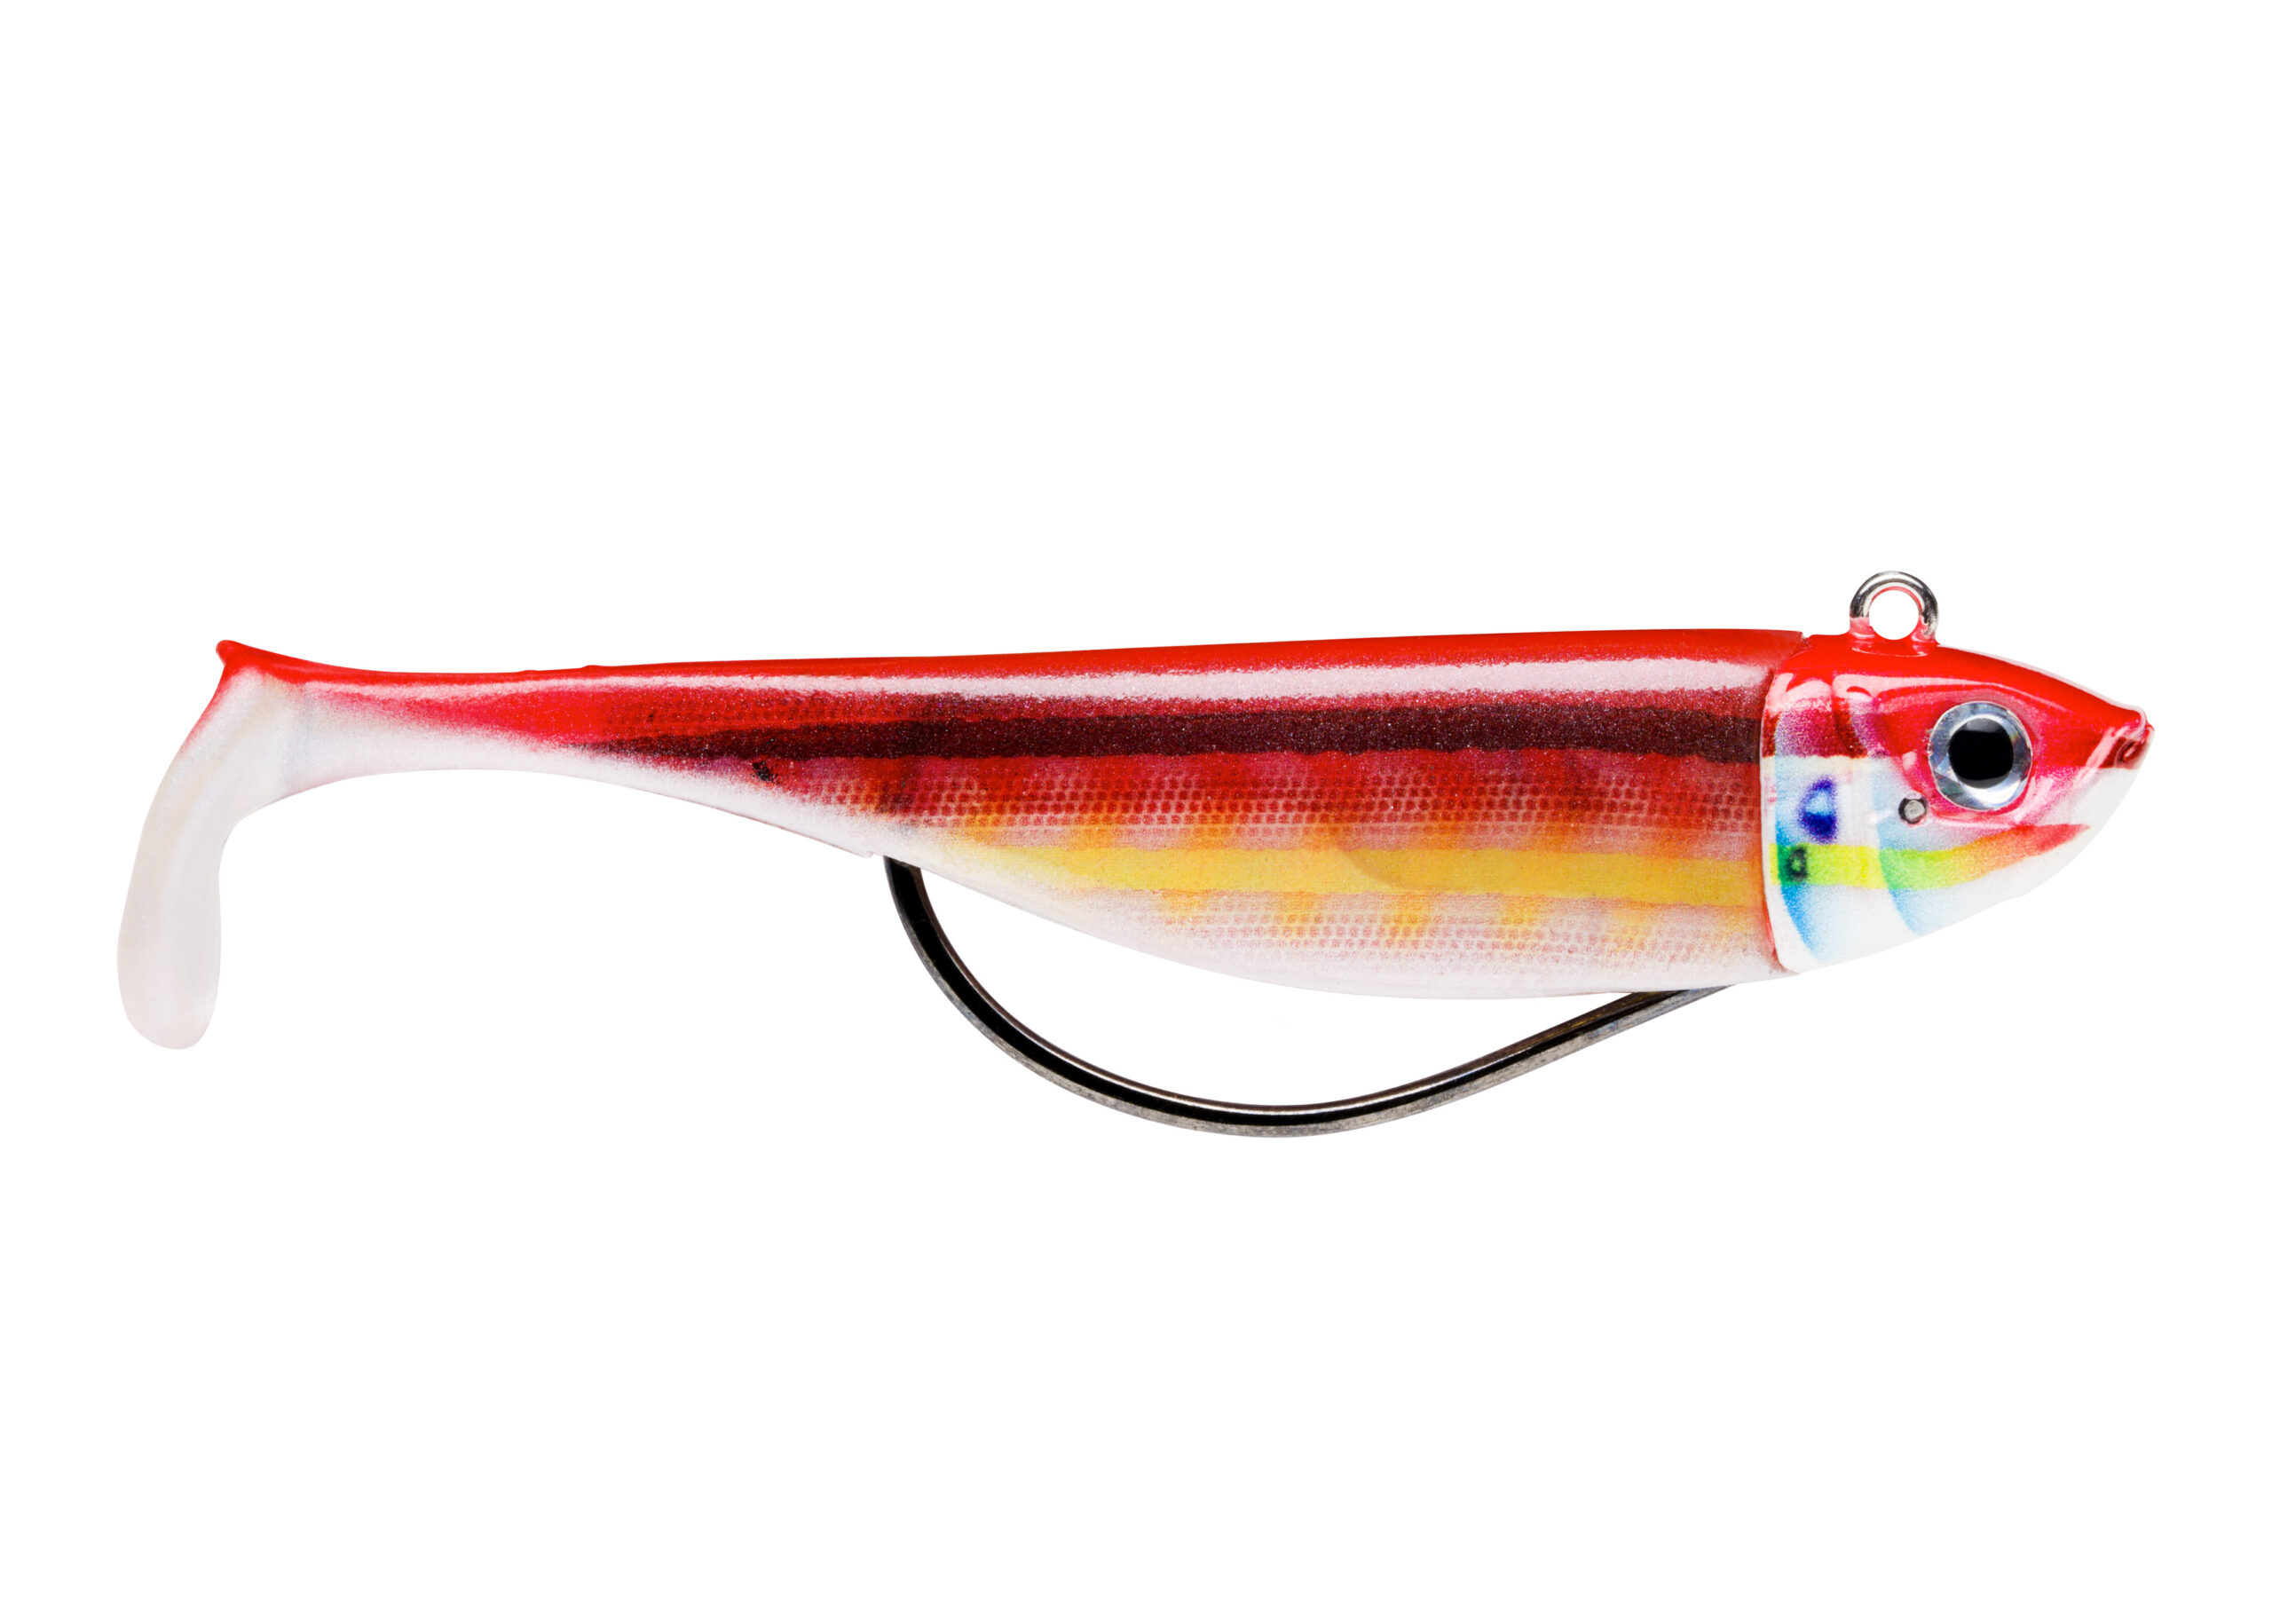 Storm 360 GT Biscay Shad Rainbow Wrasse